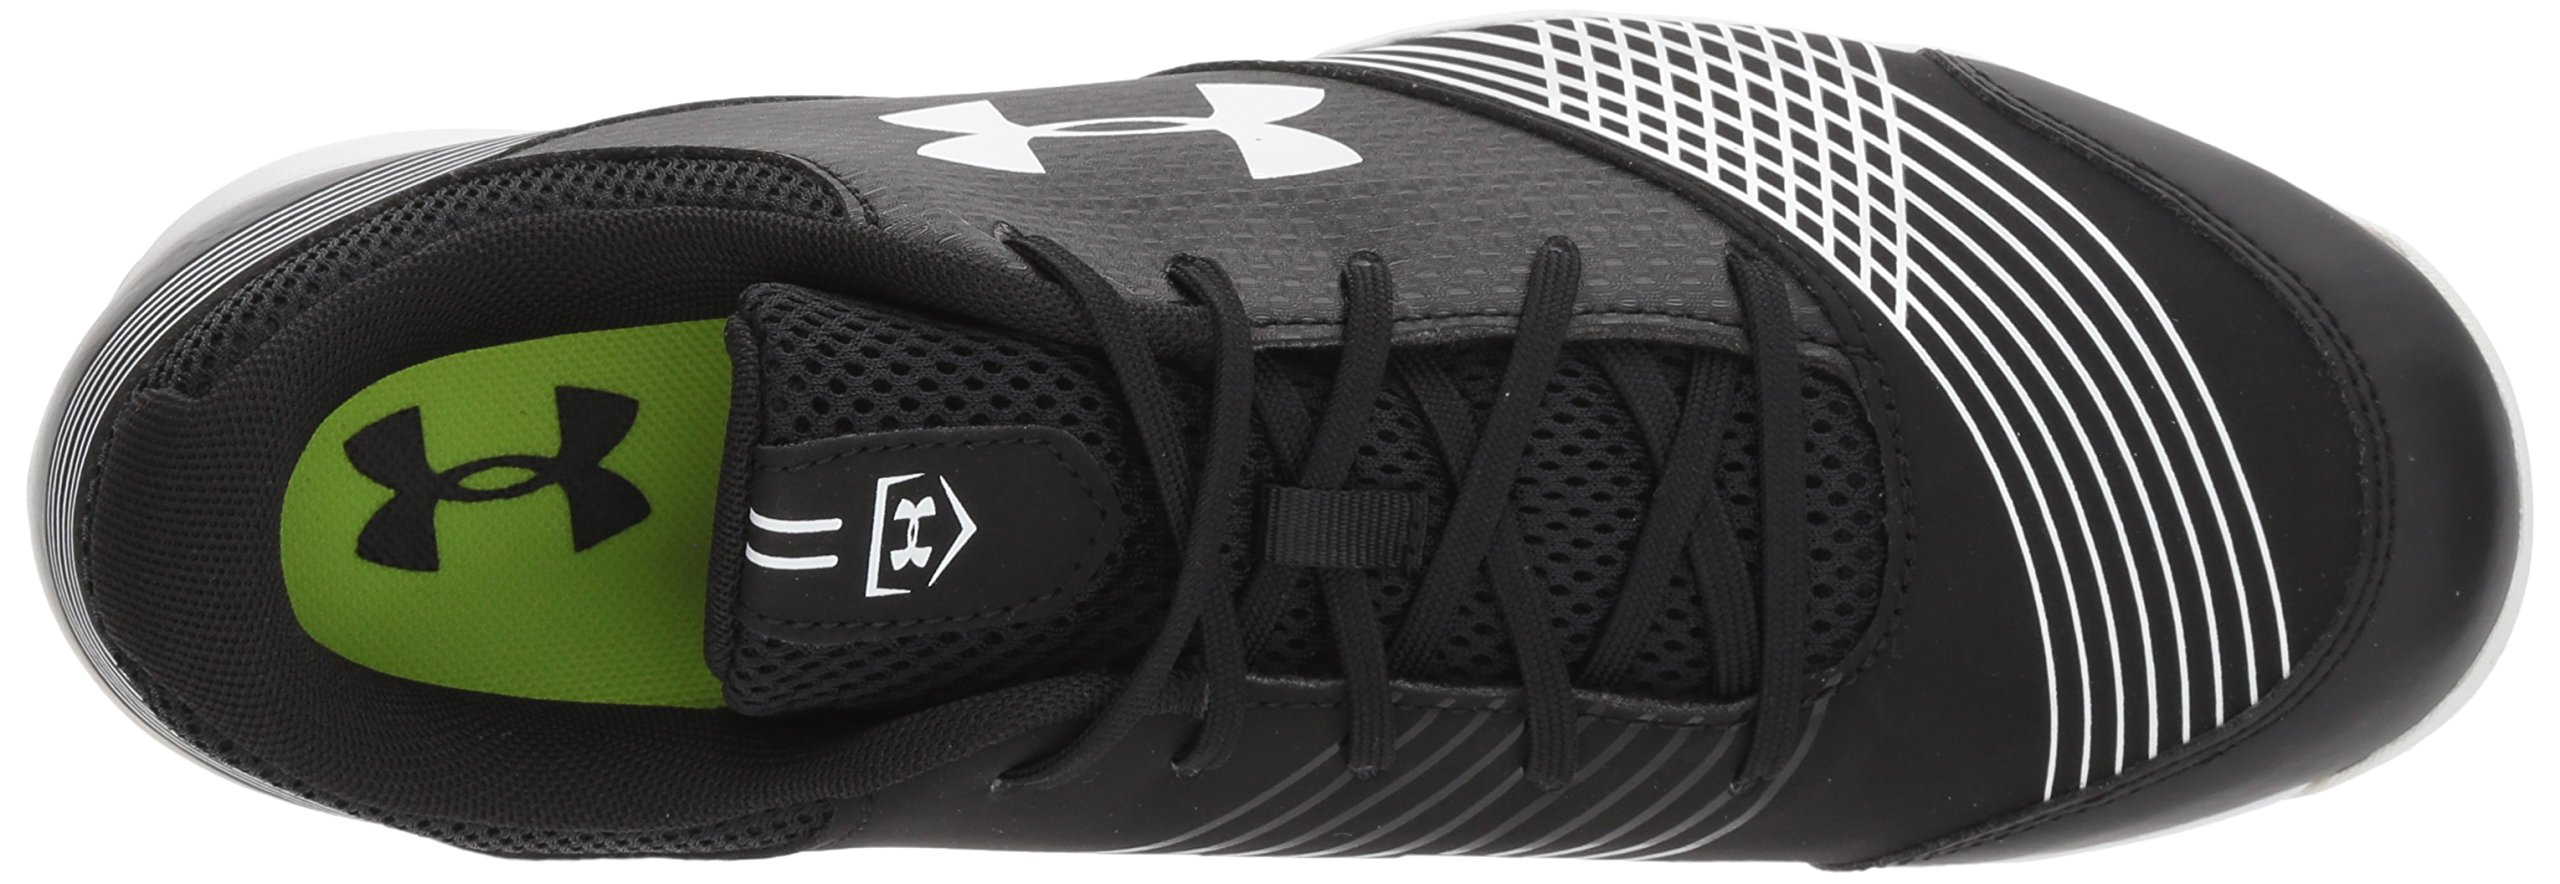 Under Armour Women's Glyde RM Softball Shoe 011/Black, 7 by Under Armour (Image #8)